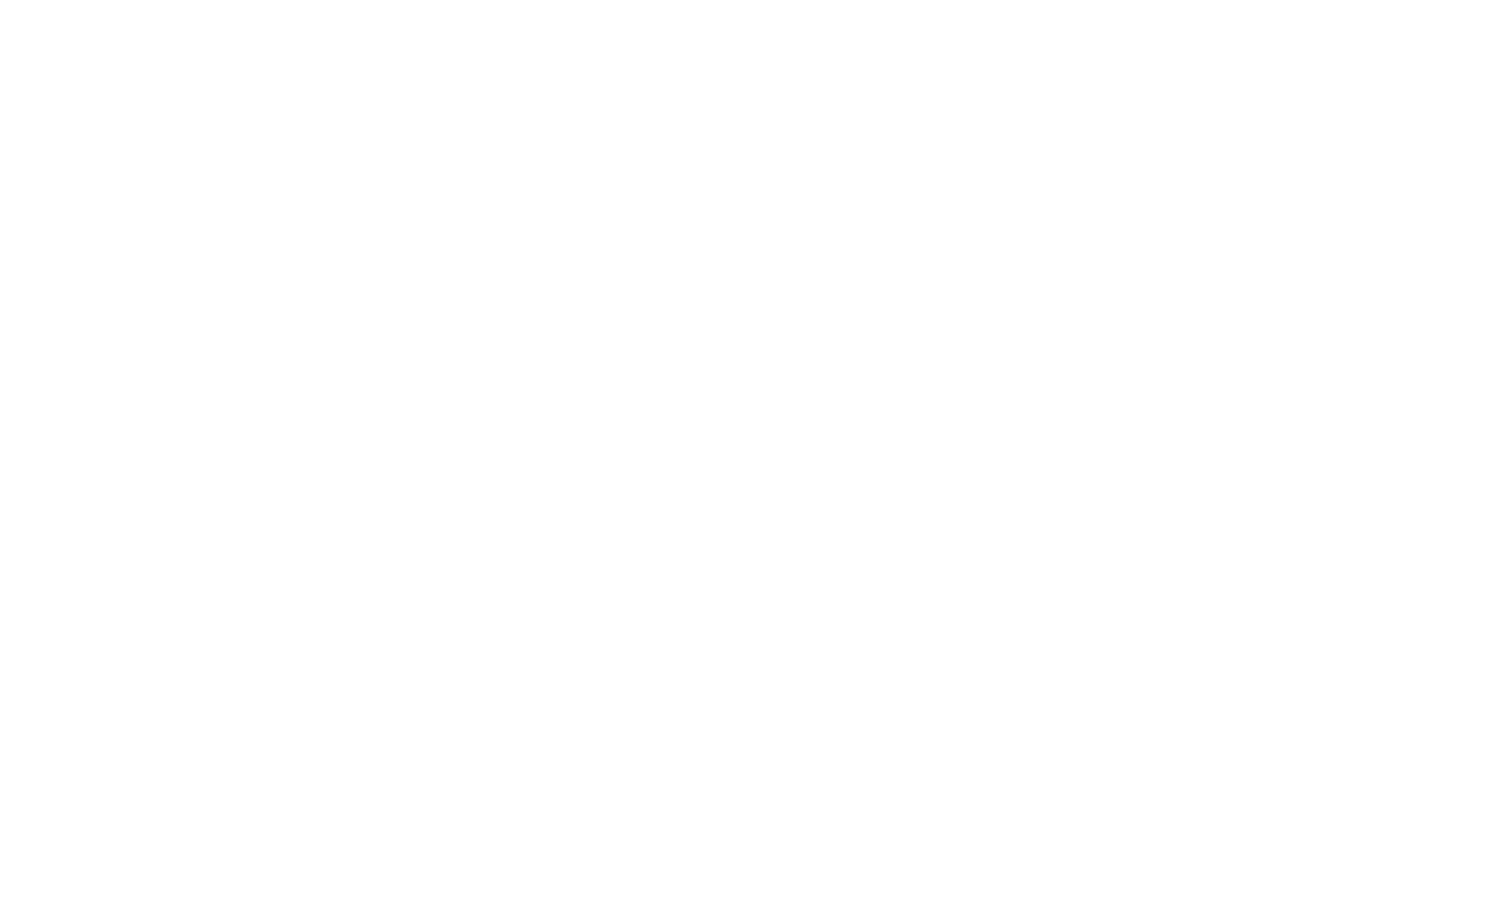 Re-elect Ken Russell for Miami City Commissioner District 2